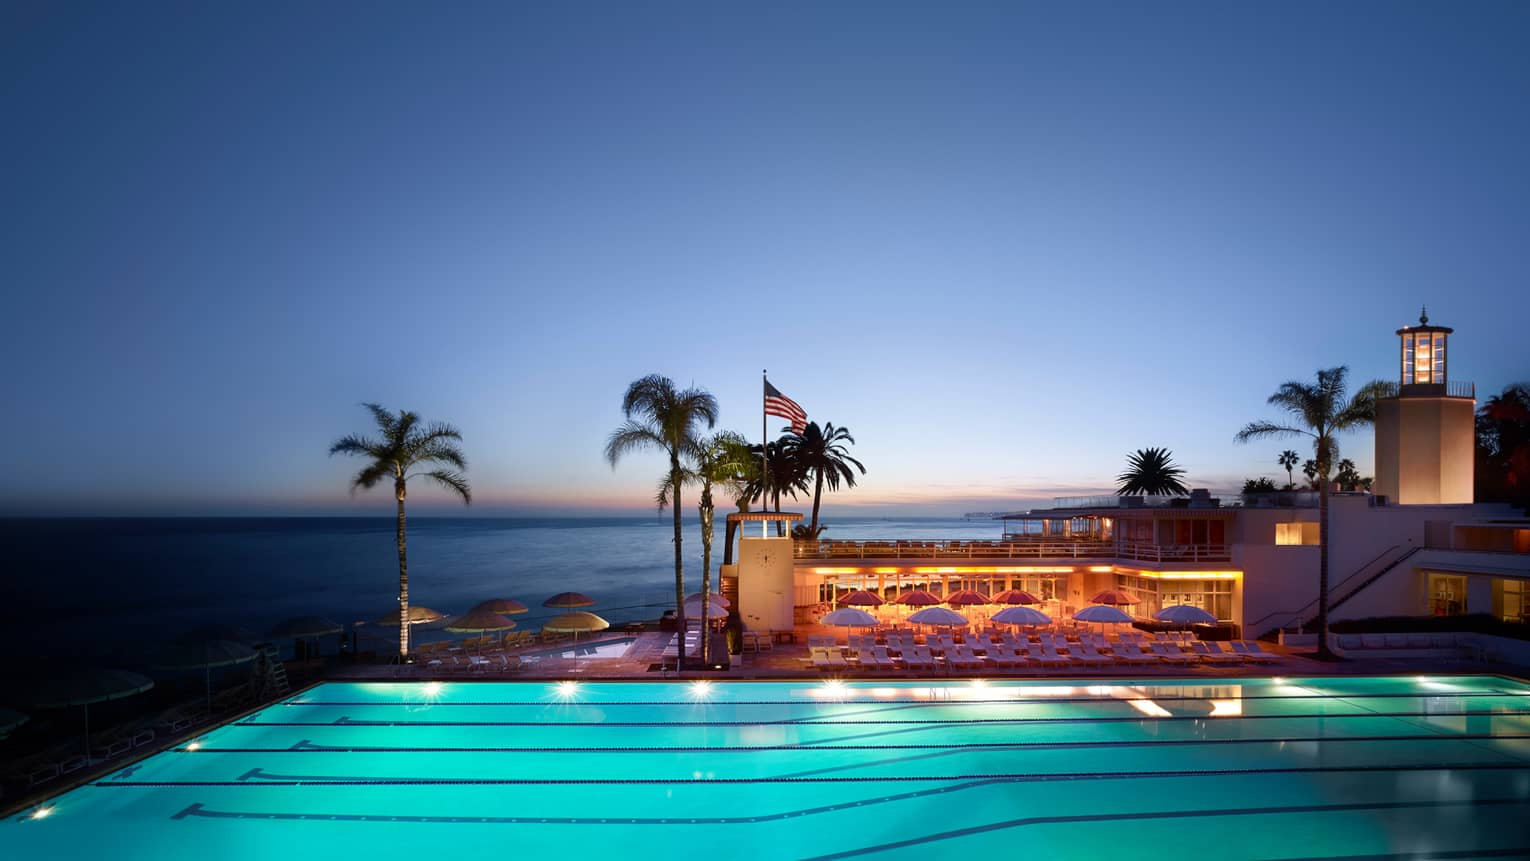 Illuminated Olympic-sized swimming lane pool, Cabana Club patio. palms and ocean at dusk